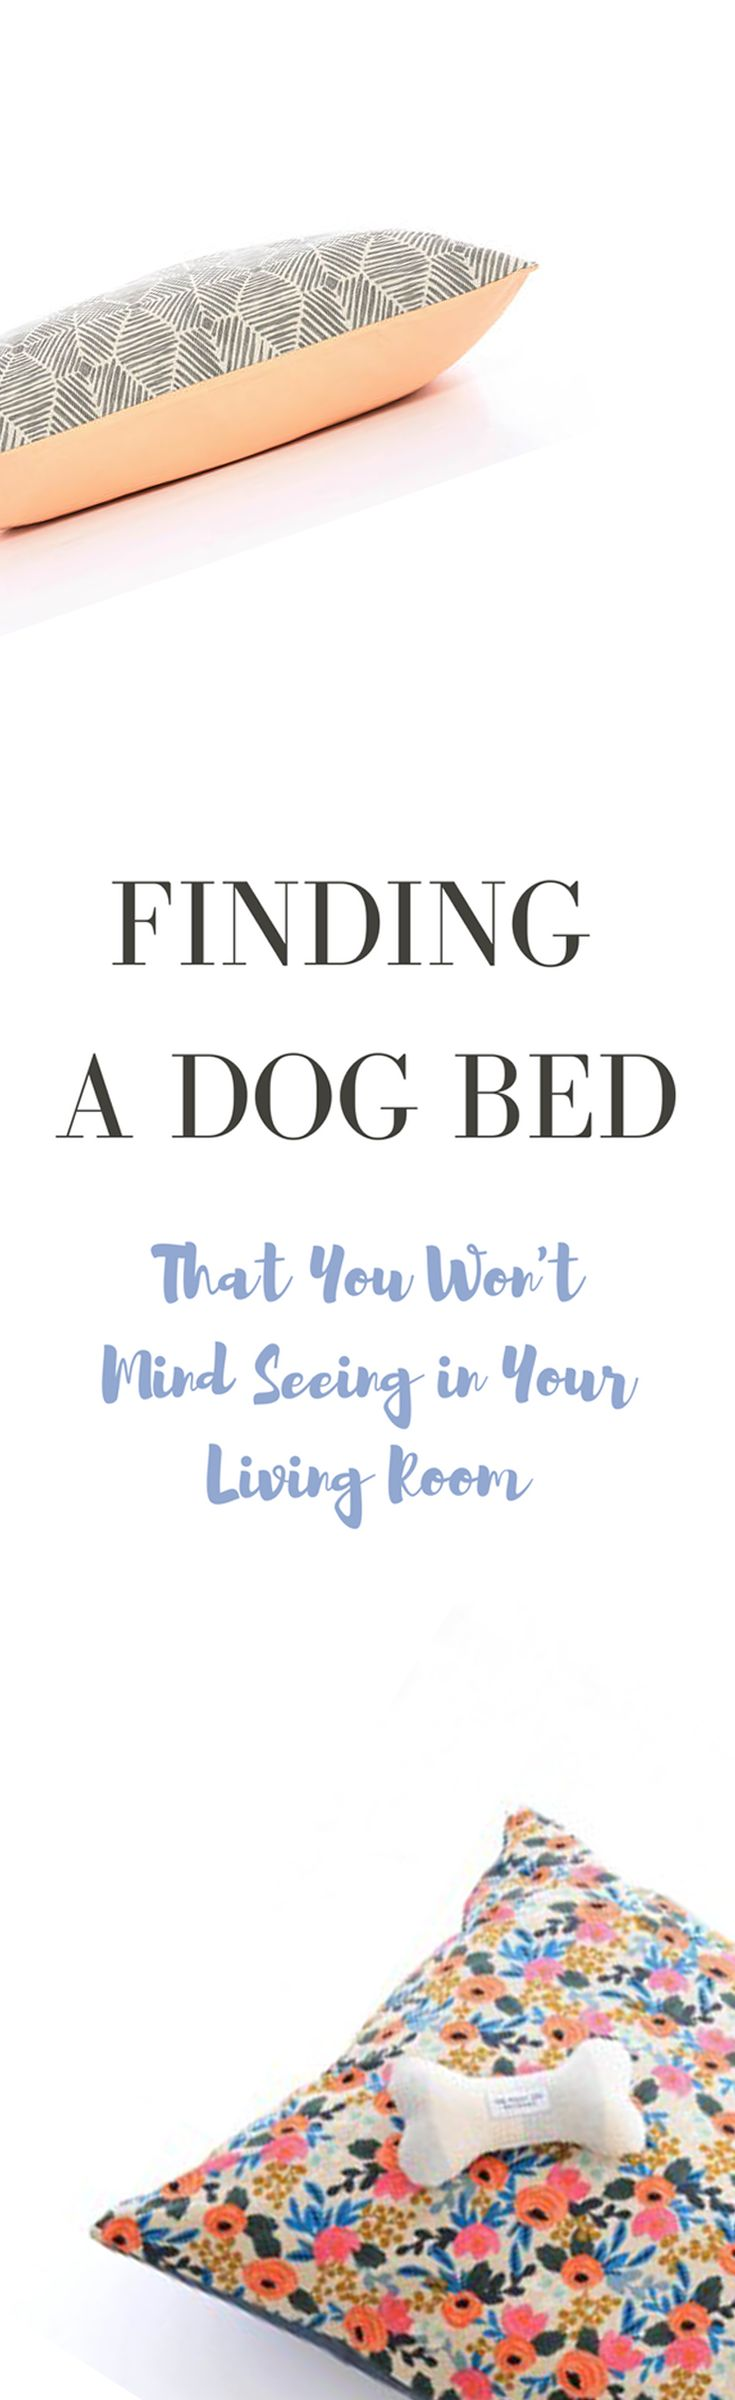 The Best Dog Beds from The Dapple.com | Design | Dog Bed | Dogs | Dog Pillows | Indie Dog Beds | Large Dog Bed | Dog Bed DIY | Small Dog Bed | Dog teepee | Pretty Dog Bed | Striped Dog Bed | Durable Dog Bed | Dog Bed Ideas | Dog Bed Pallet | Dog Training | Raising a Puppy |